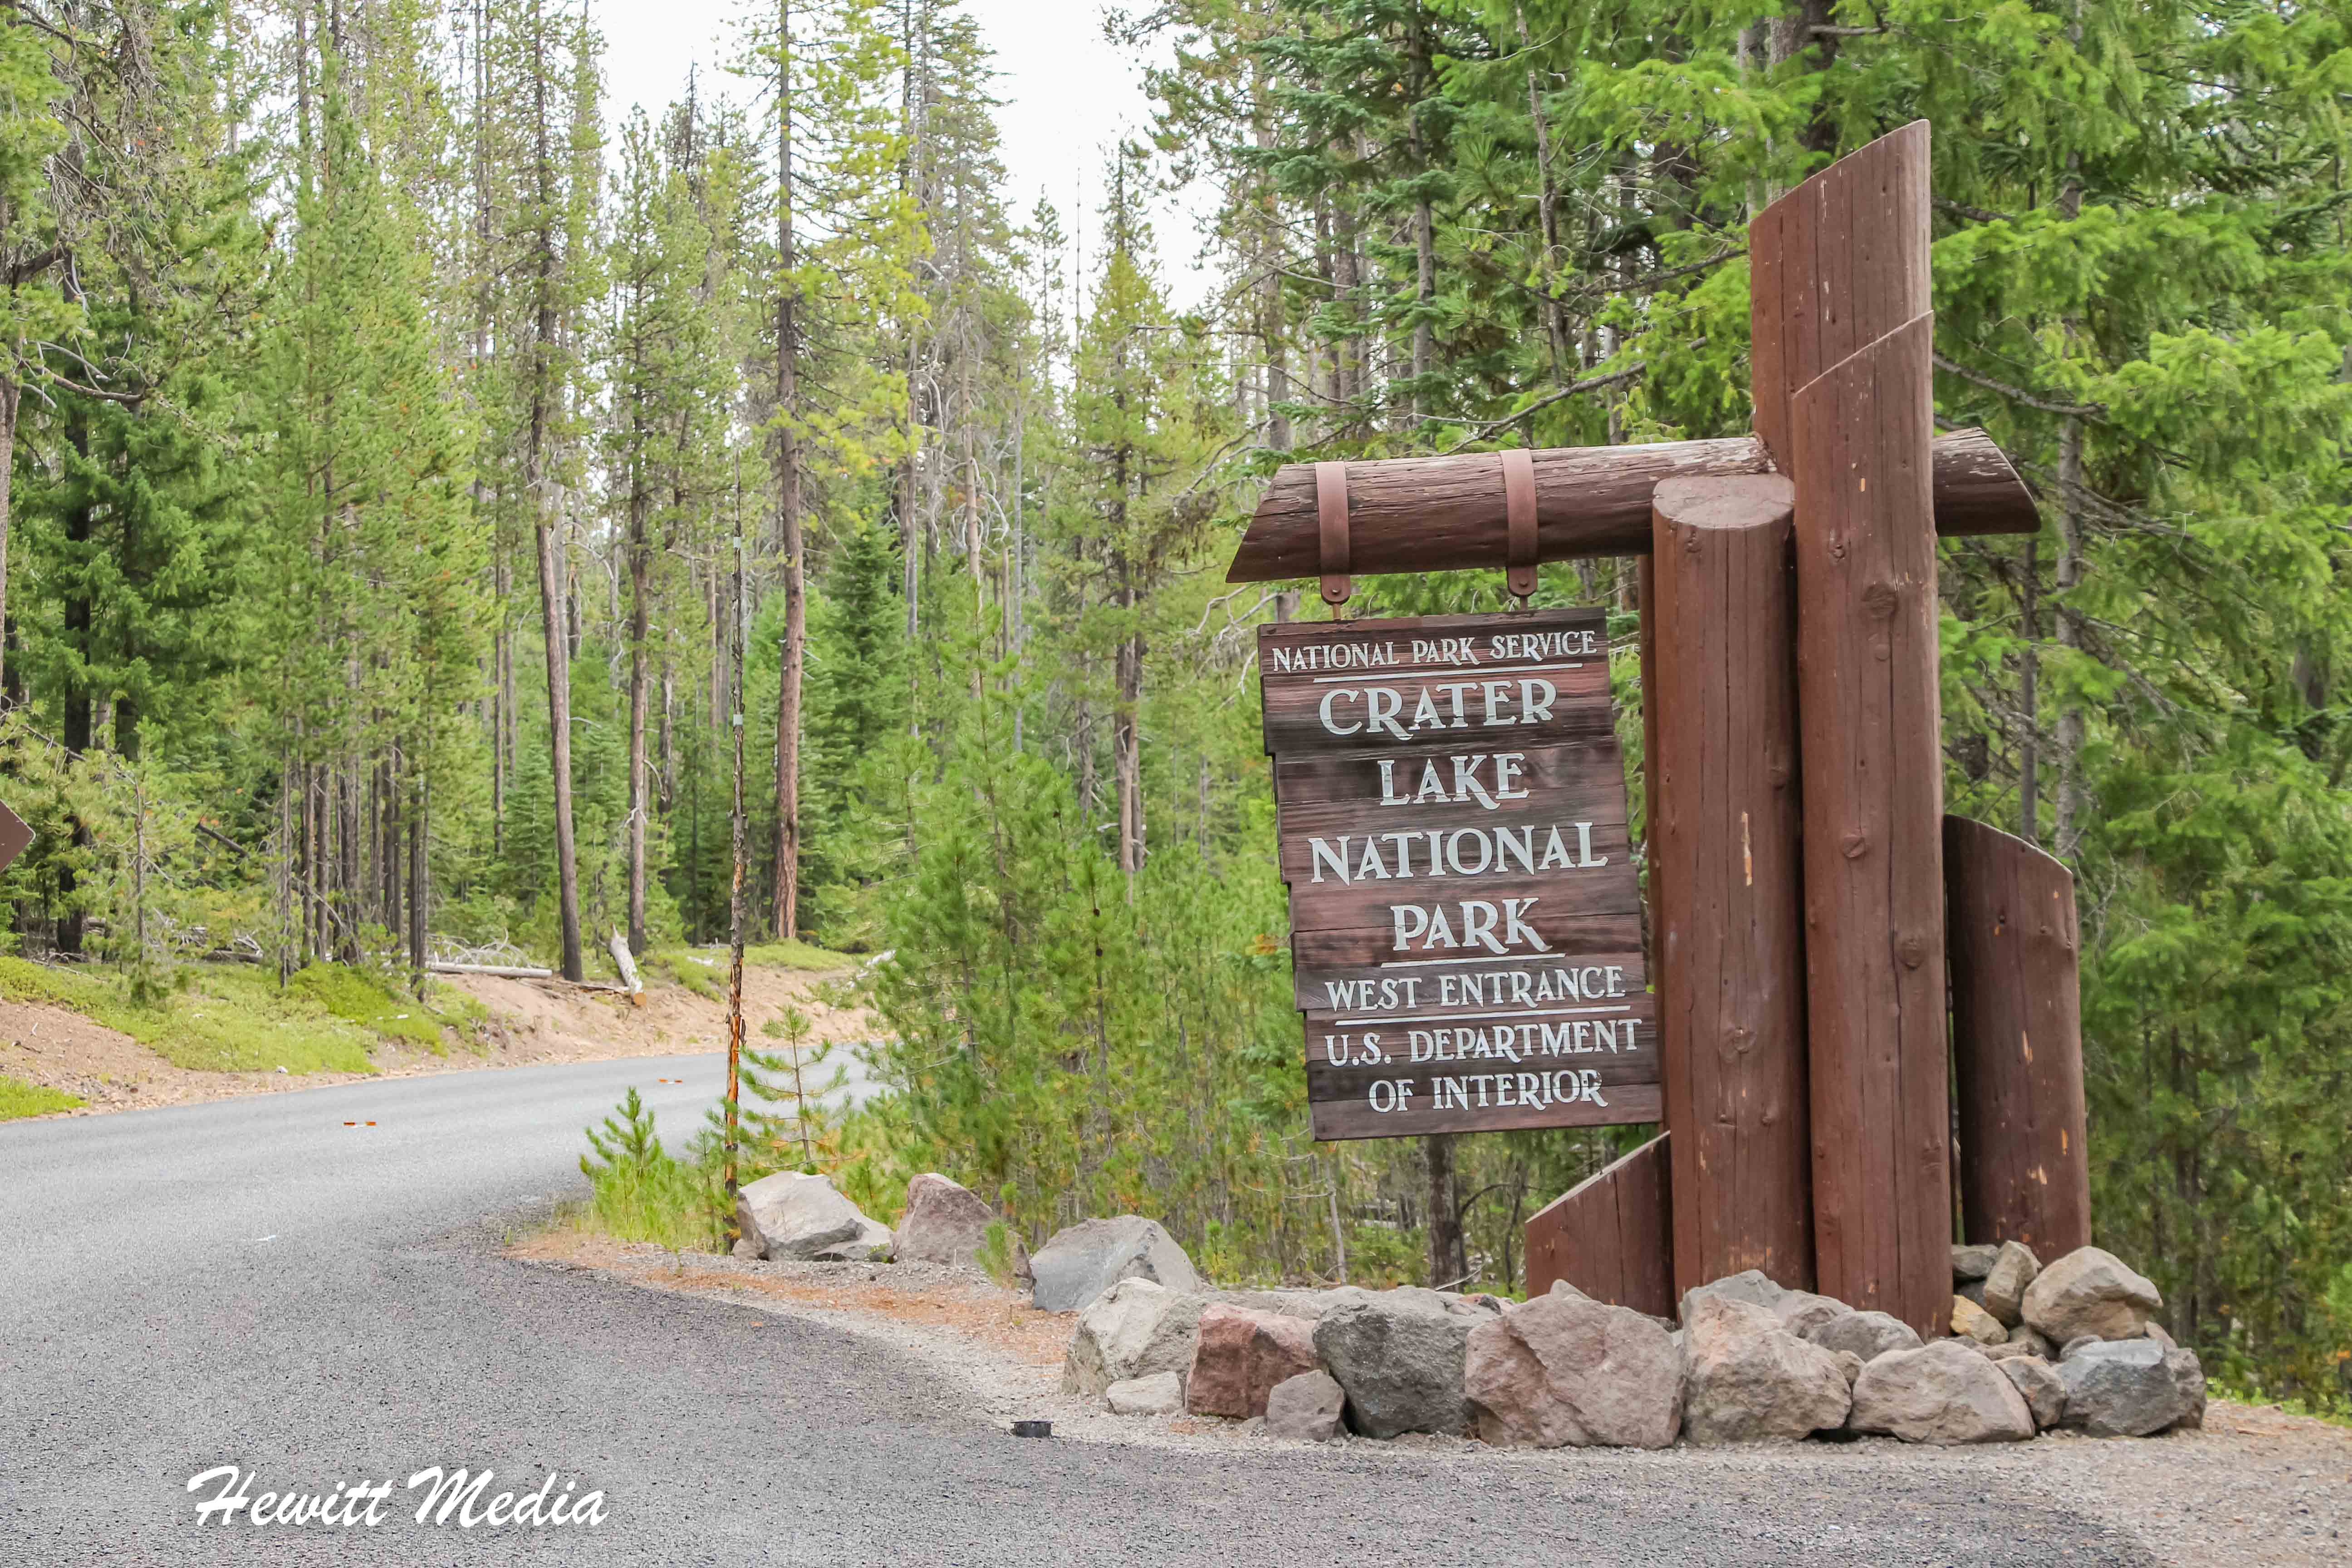 The entrance to Crater Lake National Park